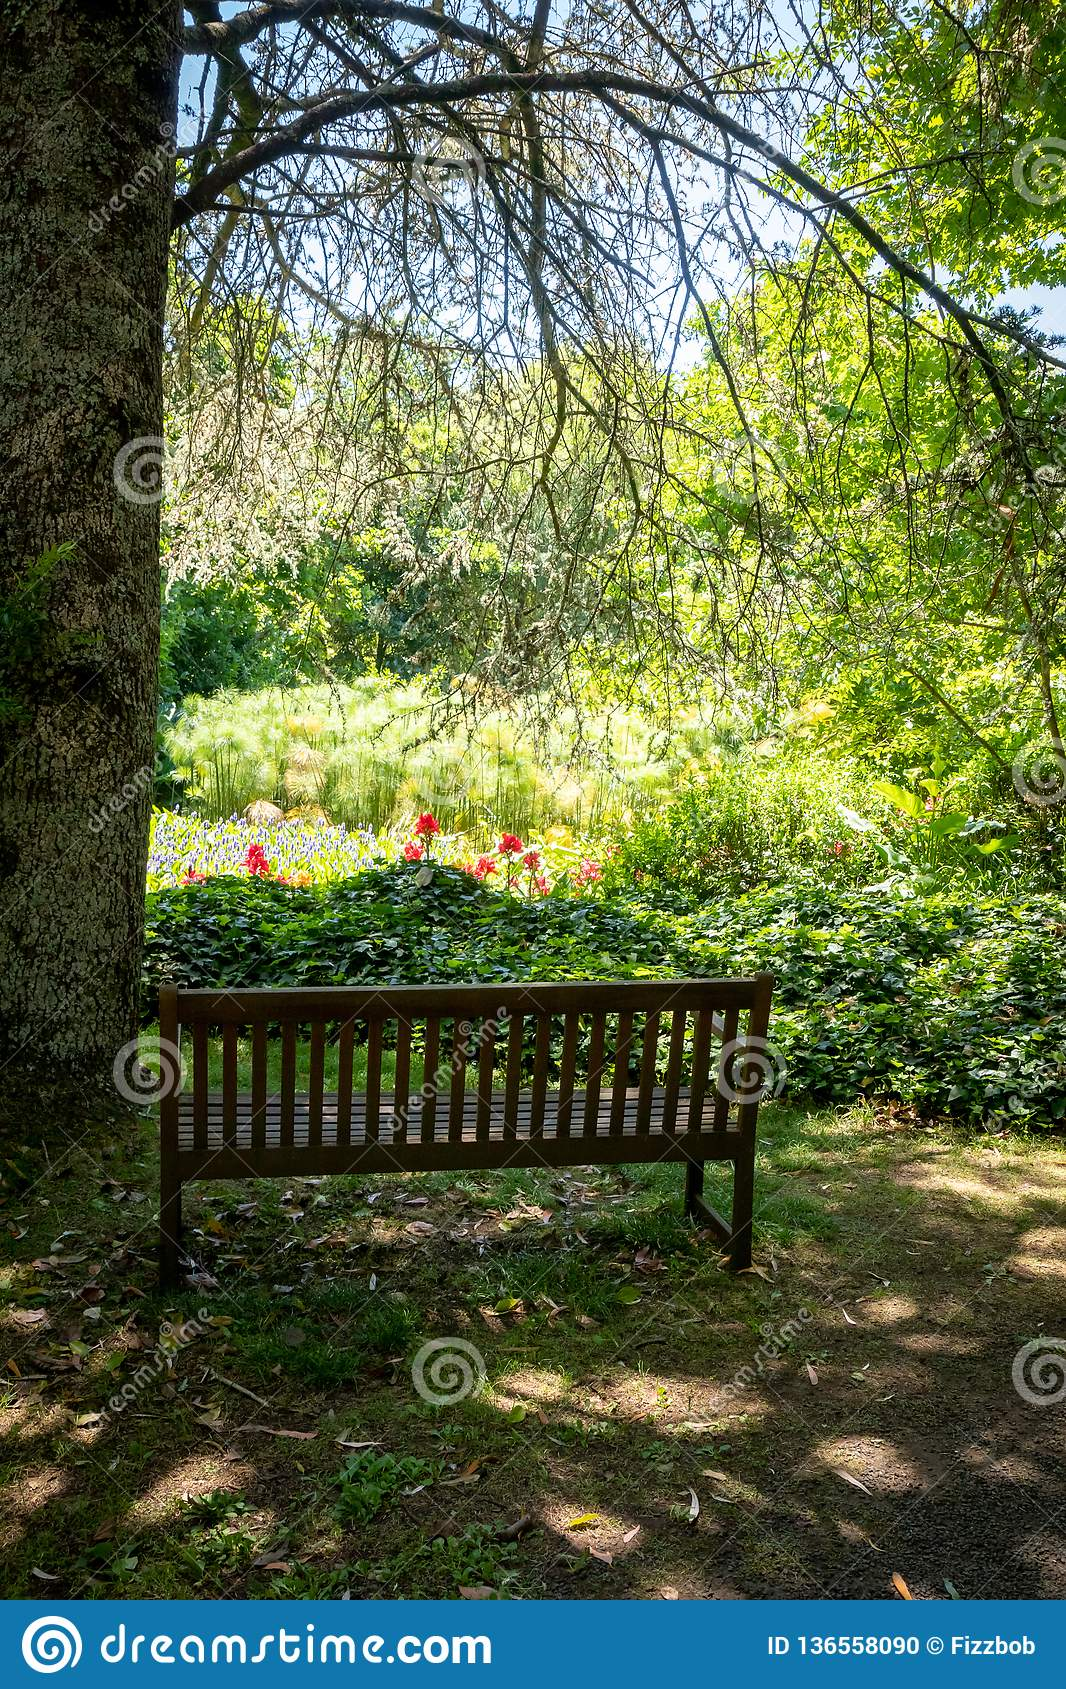 Heavy Duty Counter Stools, Garden Bench Overlooking A Garden In New Zealand Stock Photo Image Of Large Country 136558090